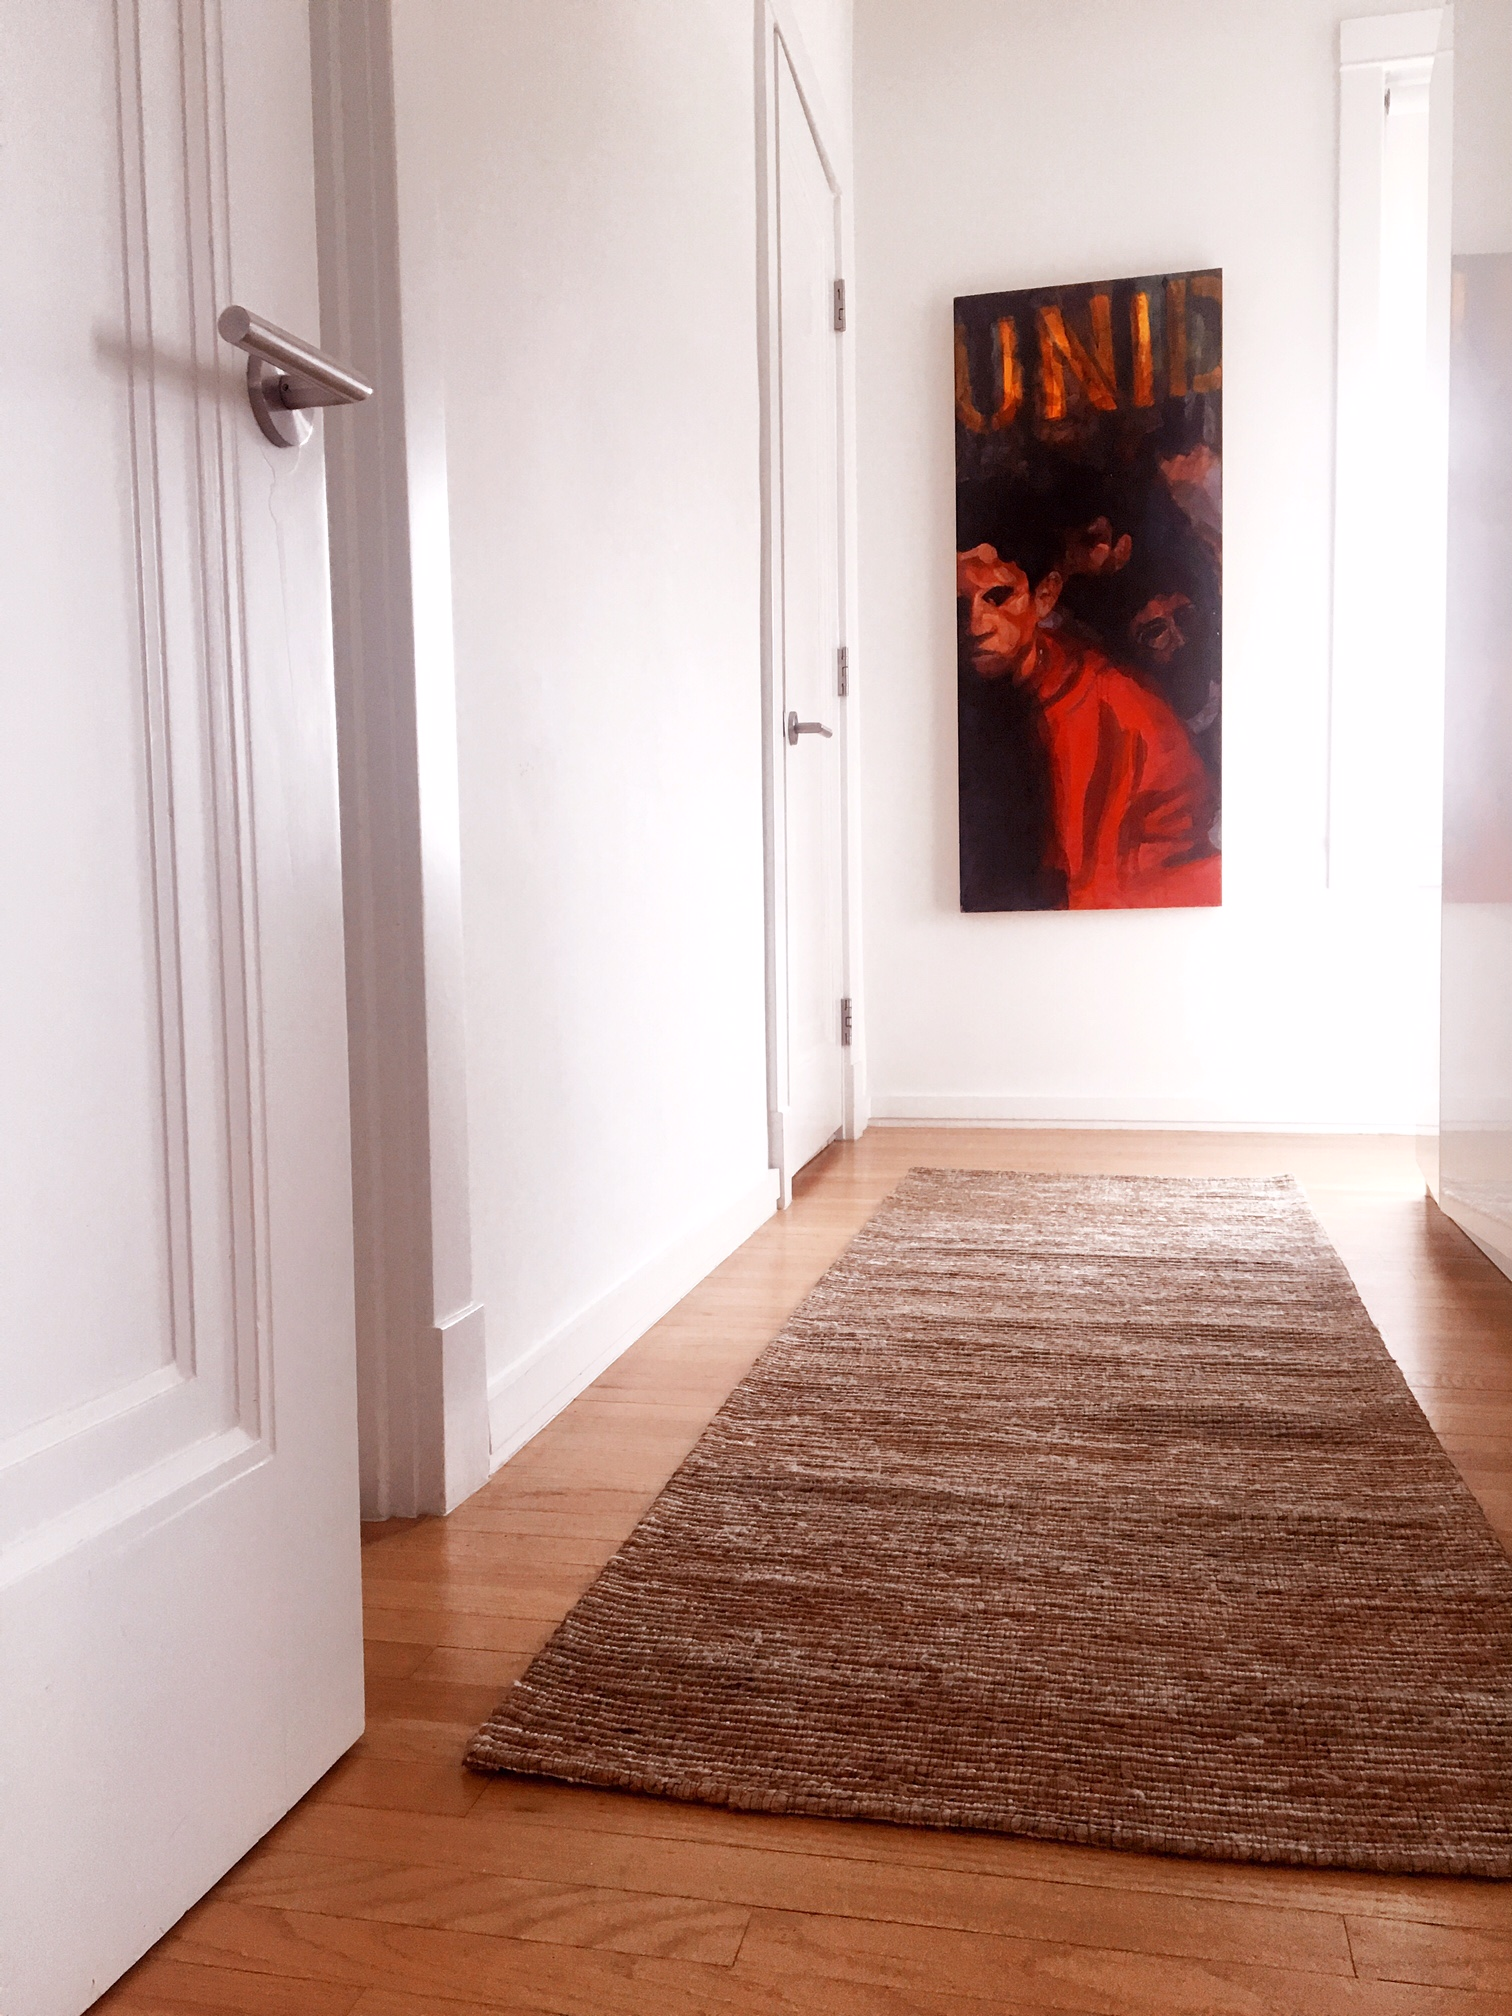 We love this runner so much that we are deciding which color to do for the master bedroom hallway leading to the restroom.